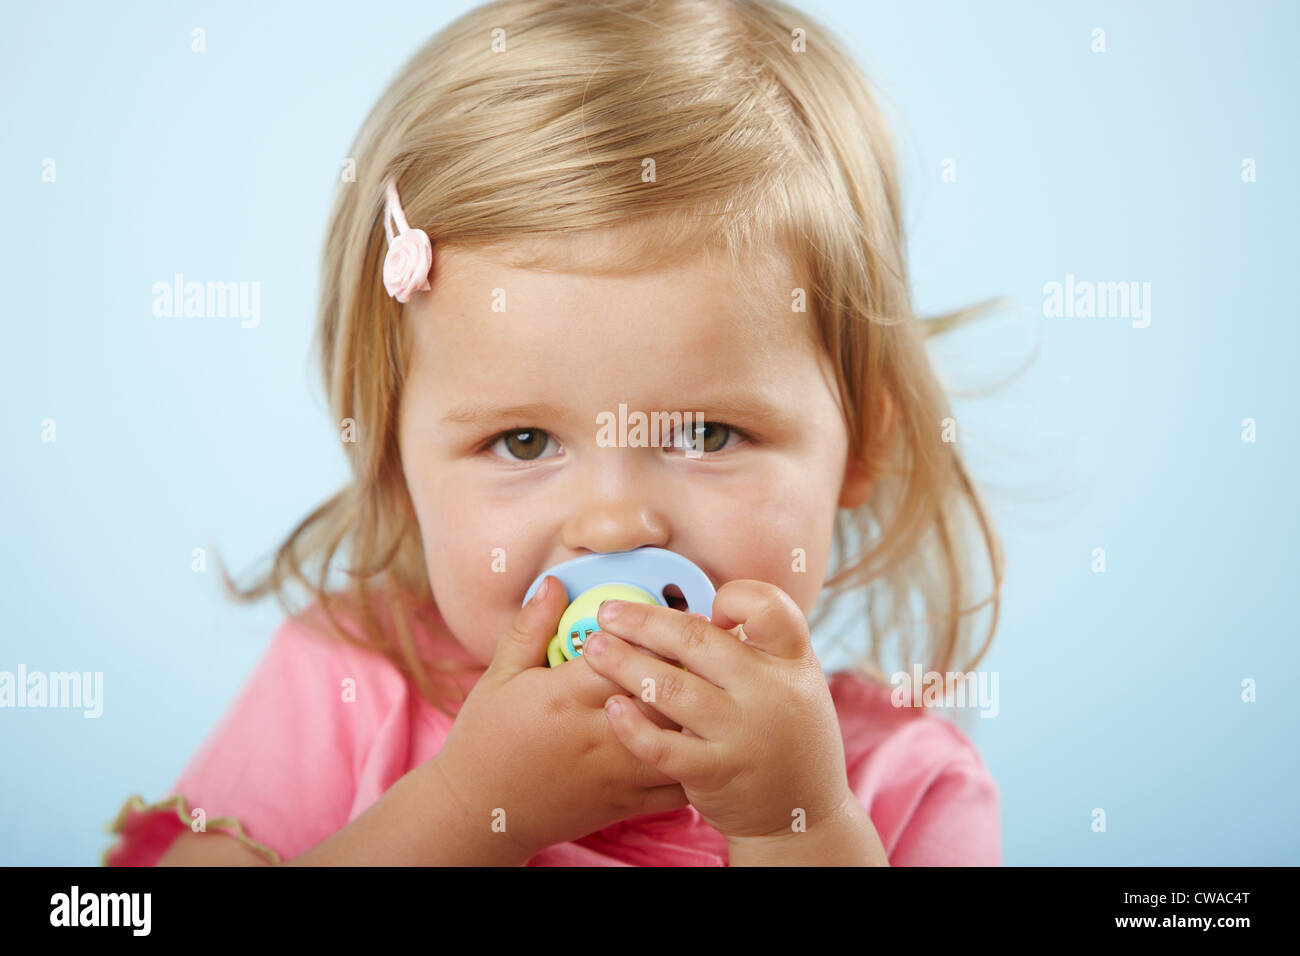 Girl with pacifier in mouth Stock Photo